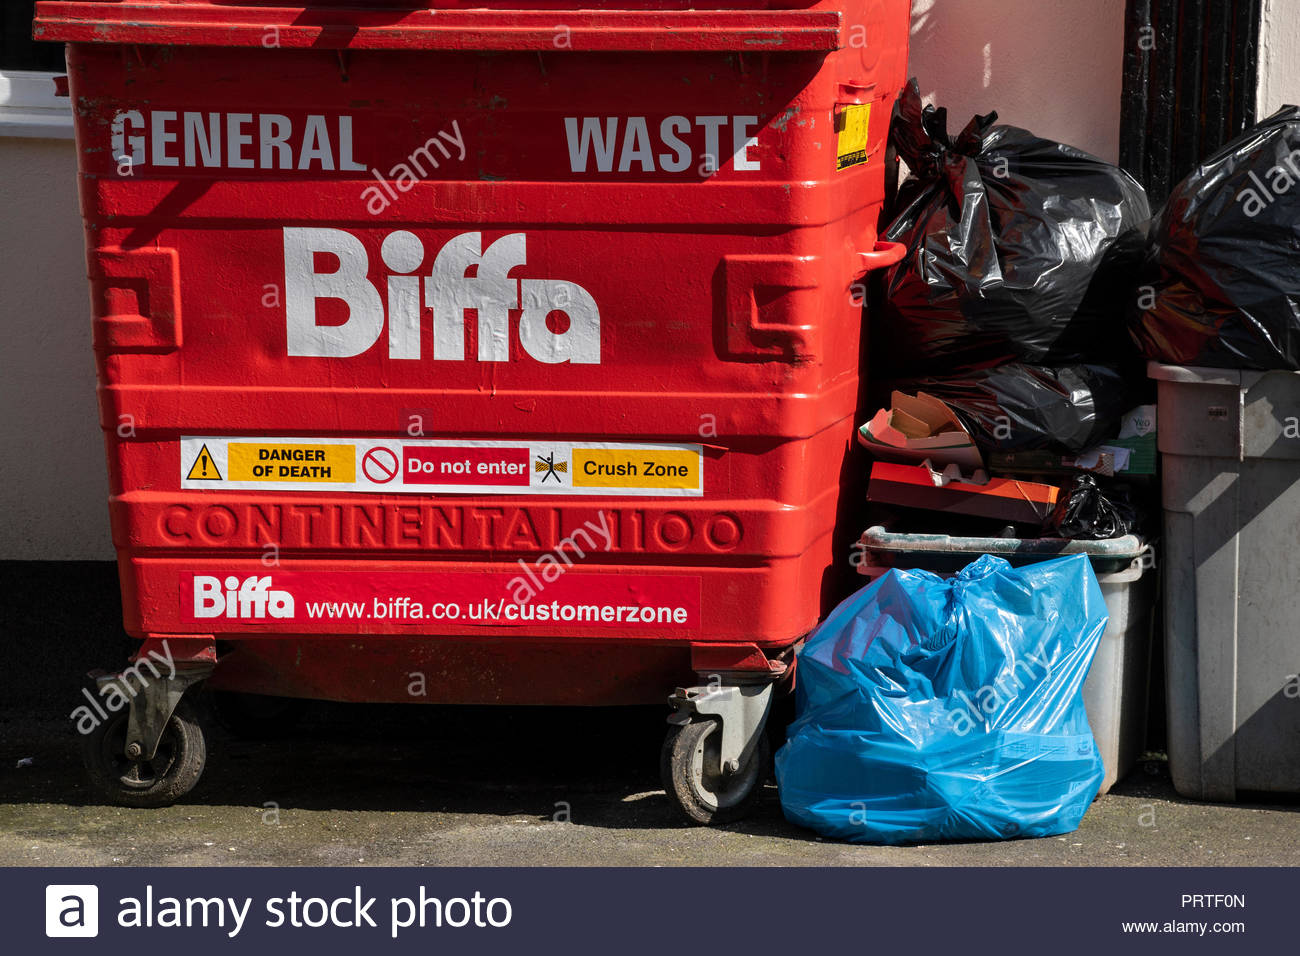 Street scene of a Biffa Gerneral Waste skip with rubbish piled by the side, Weymouth, Dorset, England, UK - Stock Image